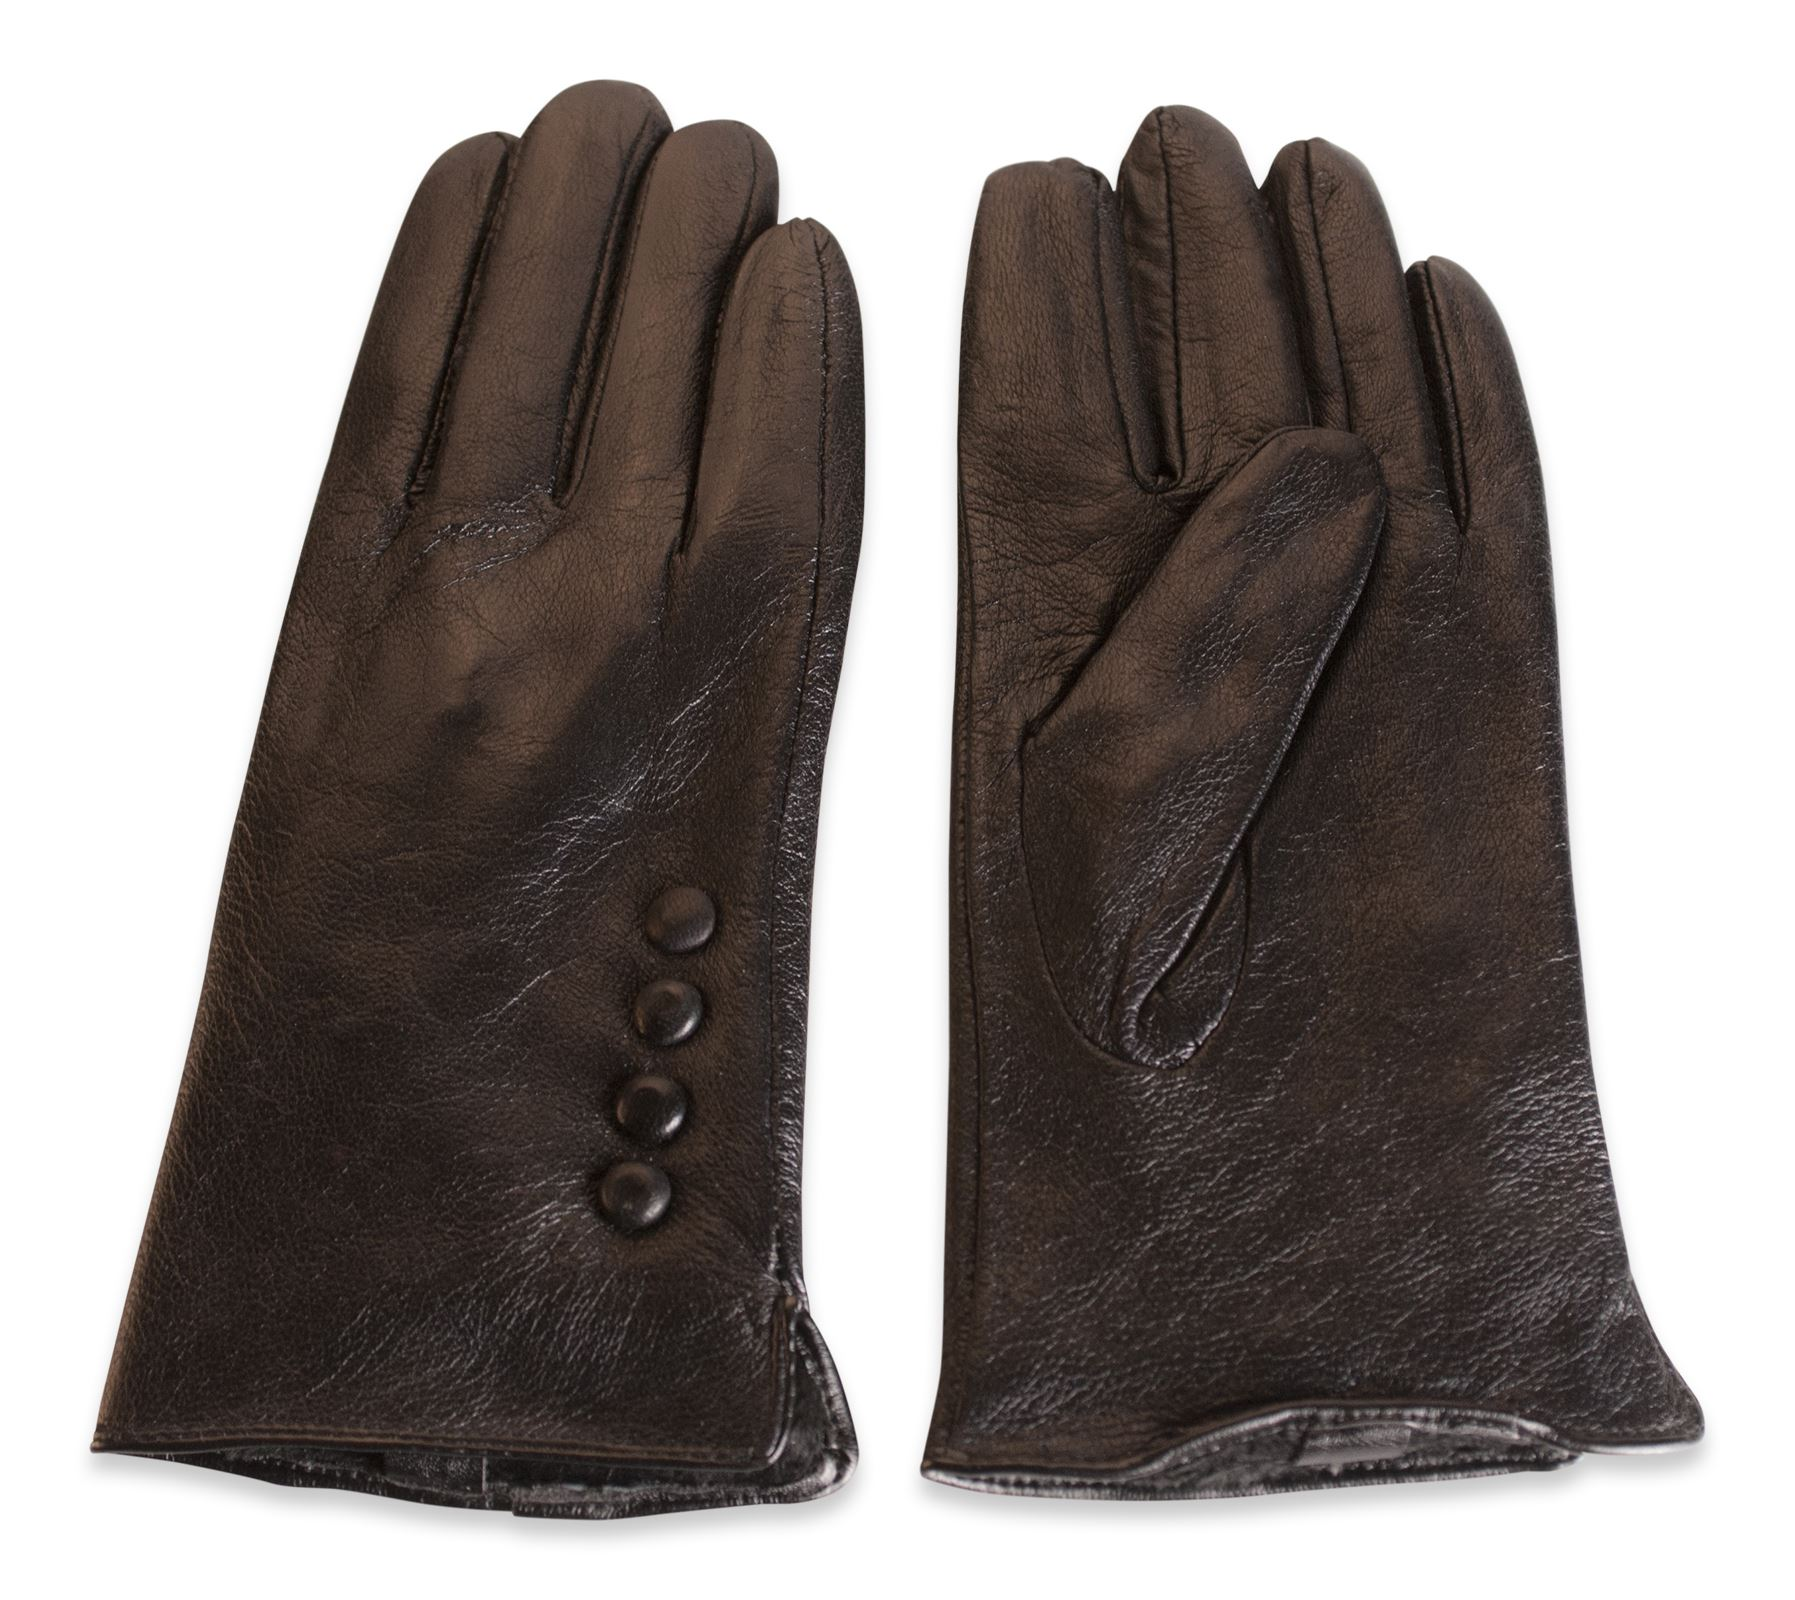 Ebay uk leather work gloves - Quivano Womens Soft Real Leather Gloves Four Button